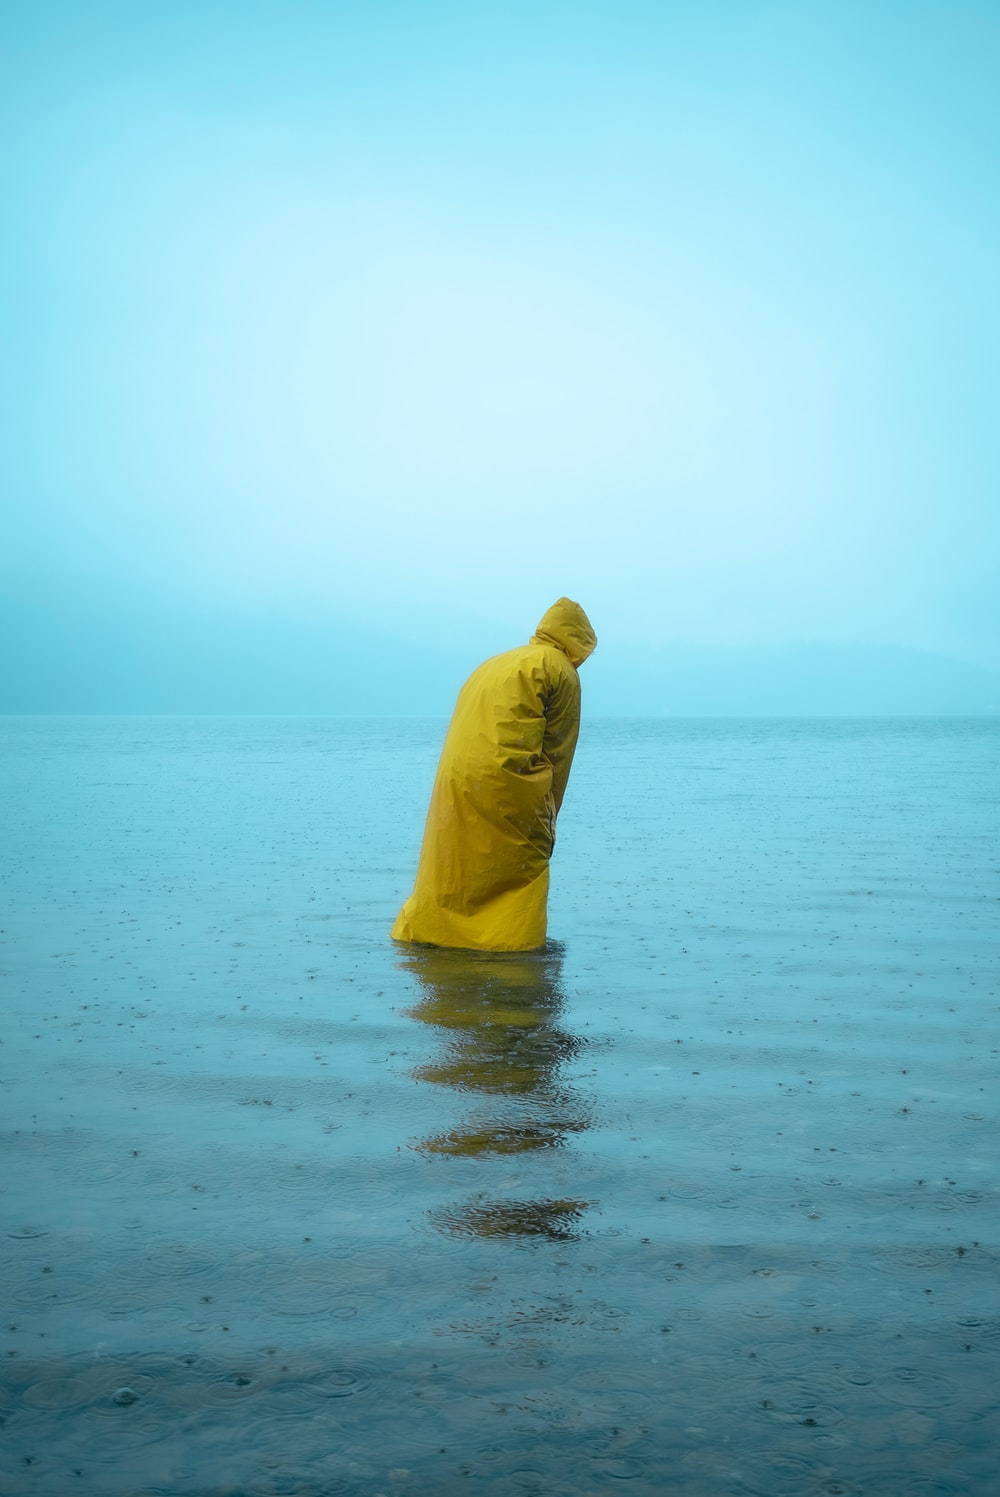 person in yellow hoodie standing on sea shore during daytime